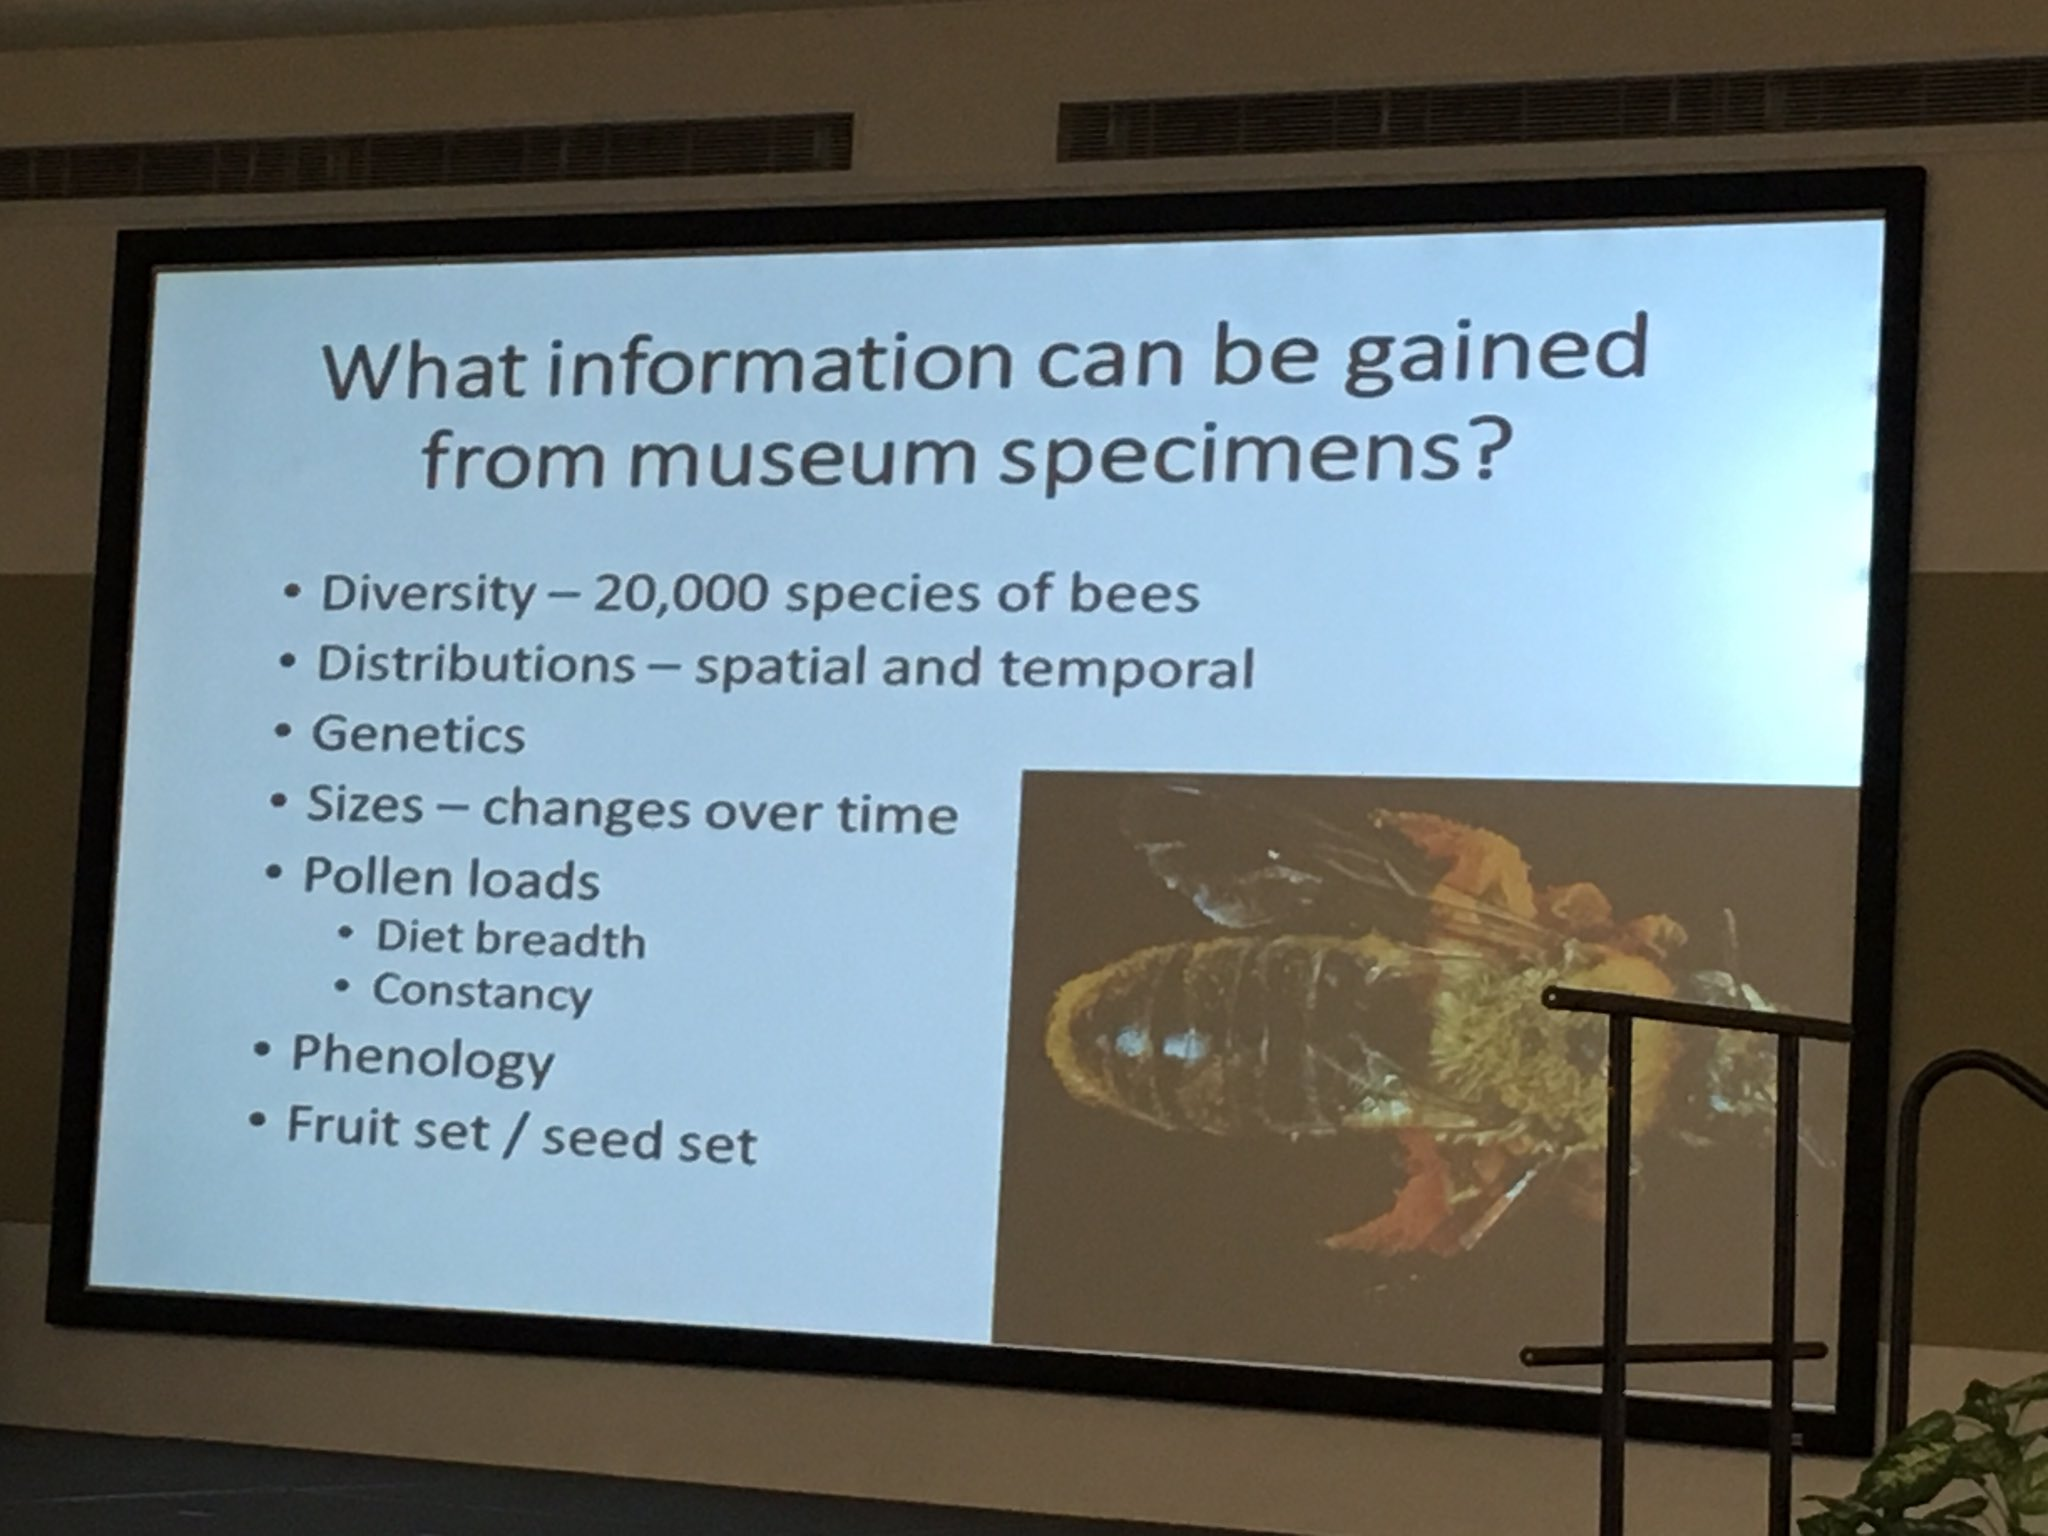 David Inouye at @sci_coll #scicollfood on info that can be gained from museum collections. https://t.co/zqqm1WRnQH